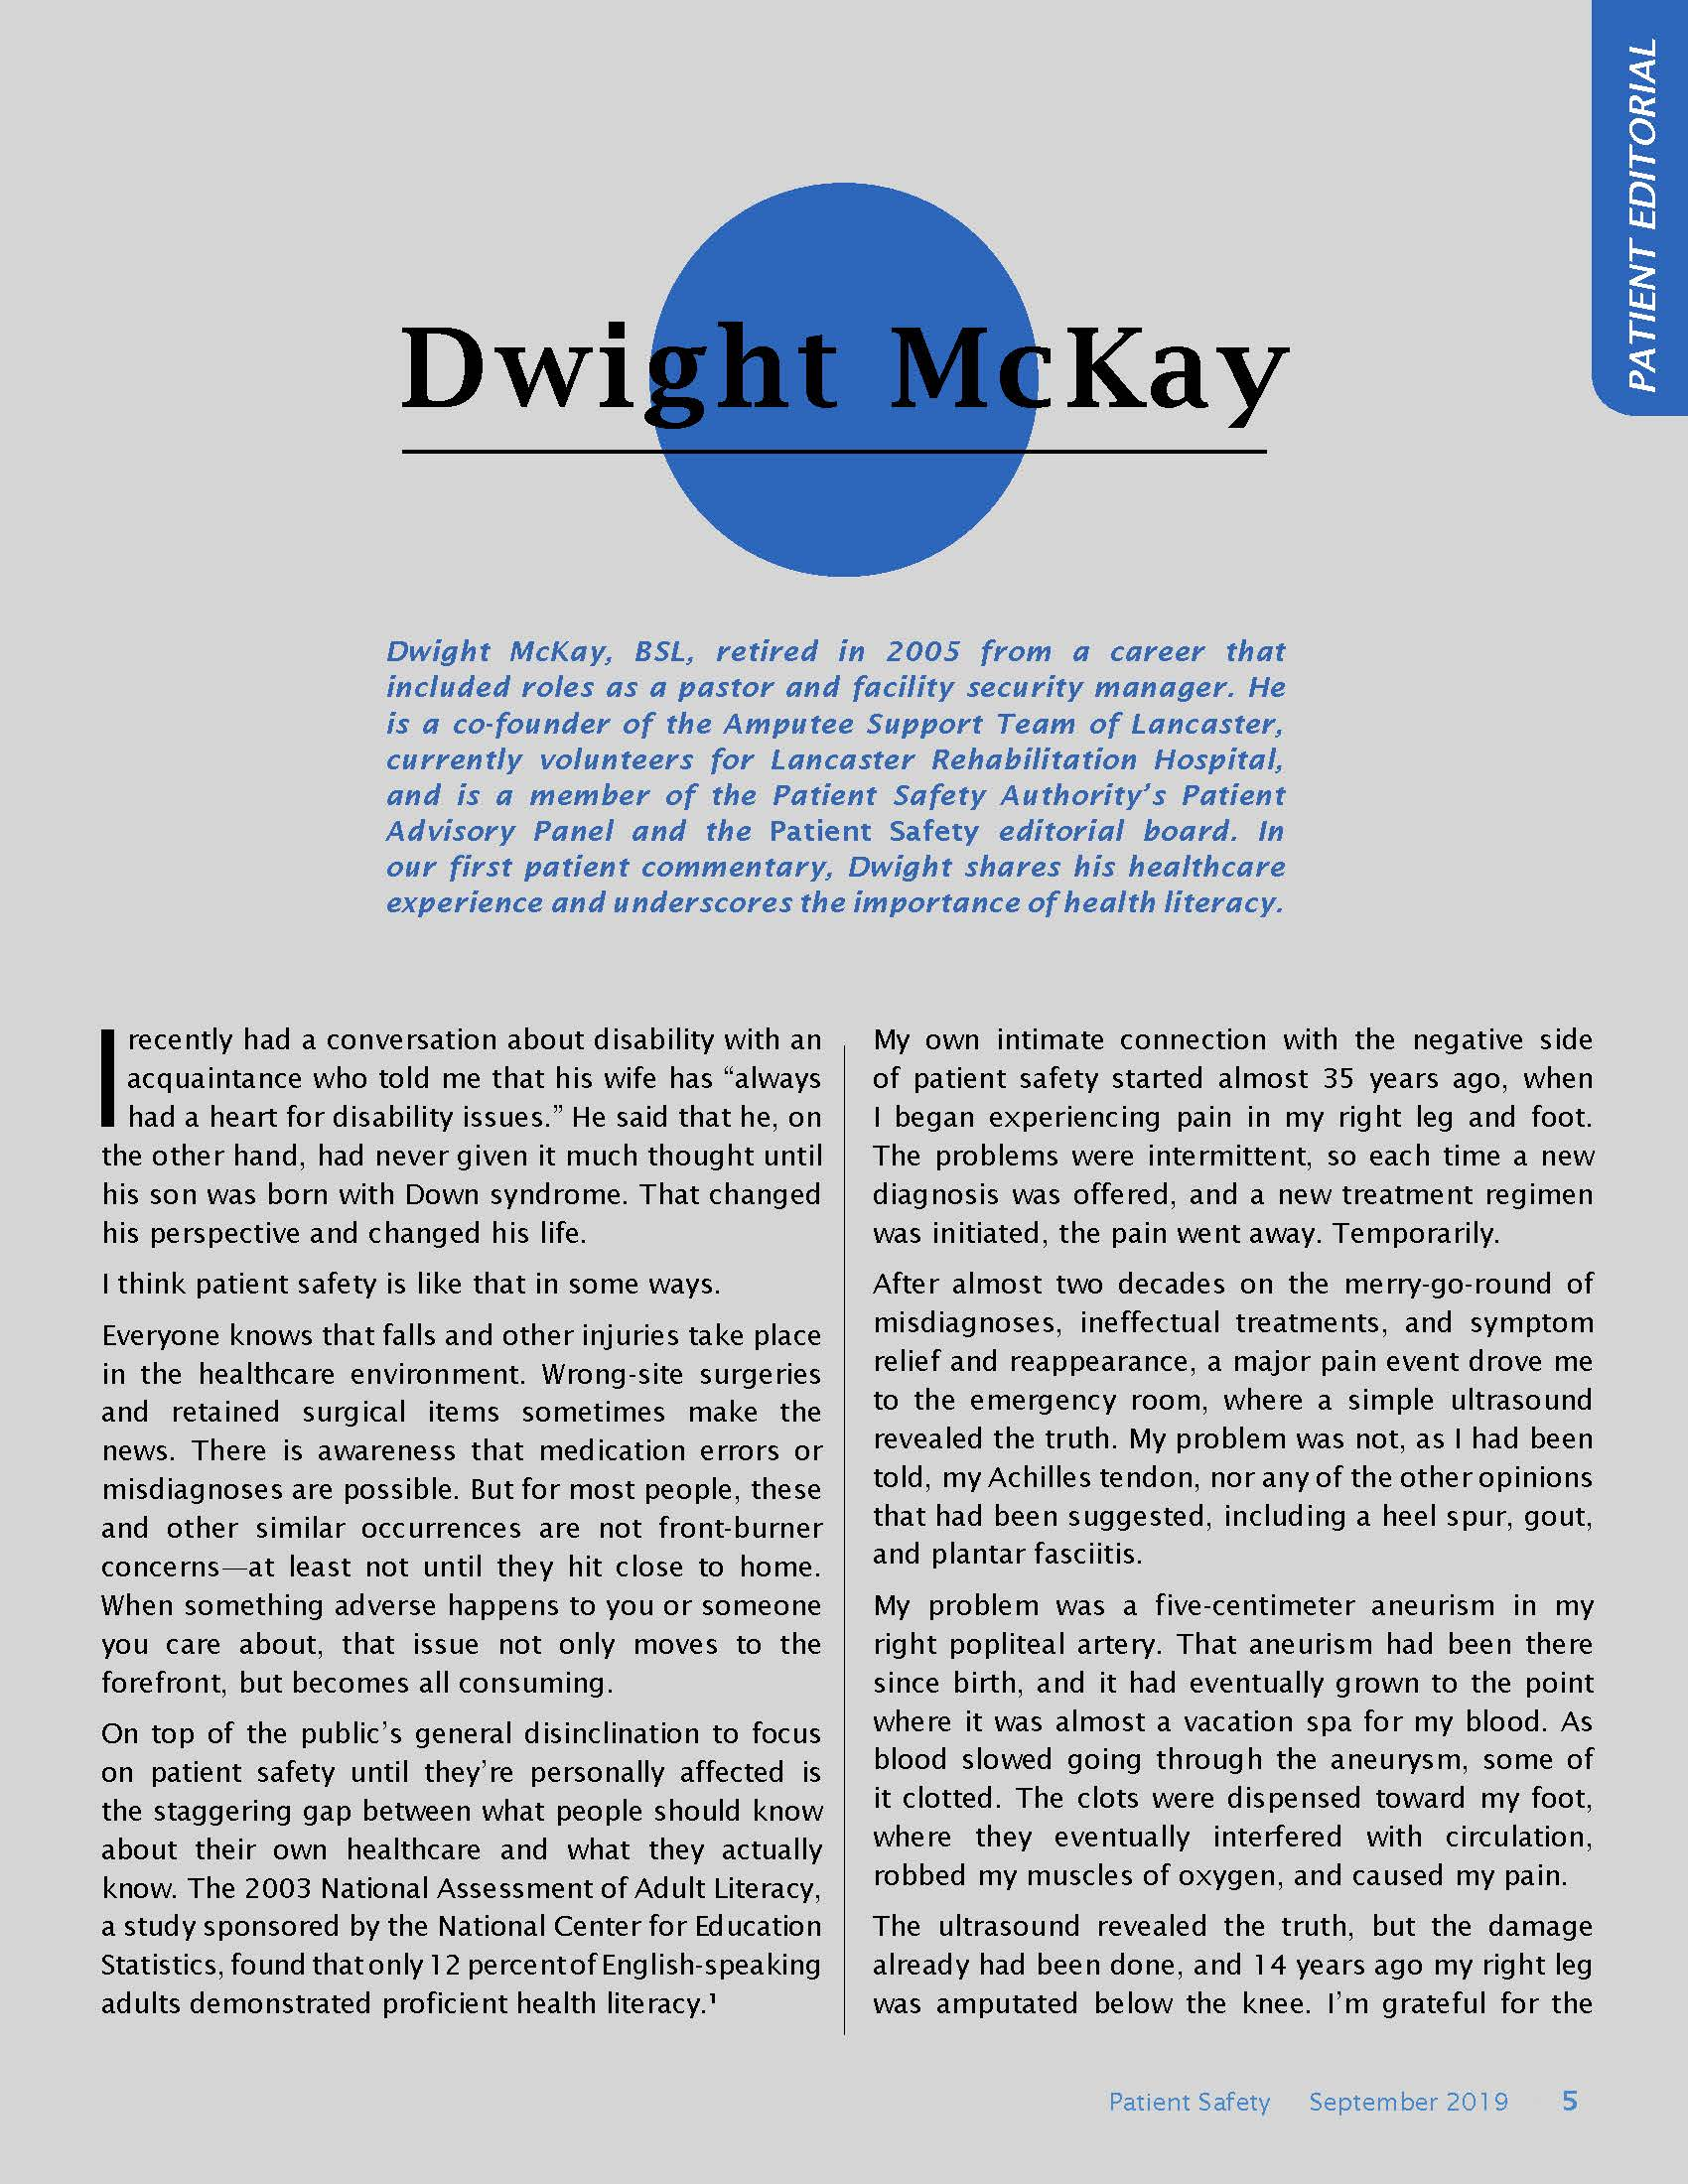 Dwight McKay patient commentary